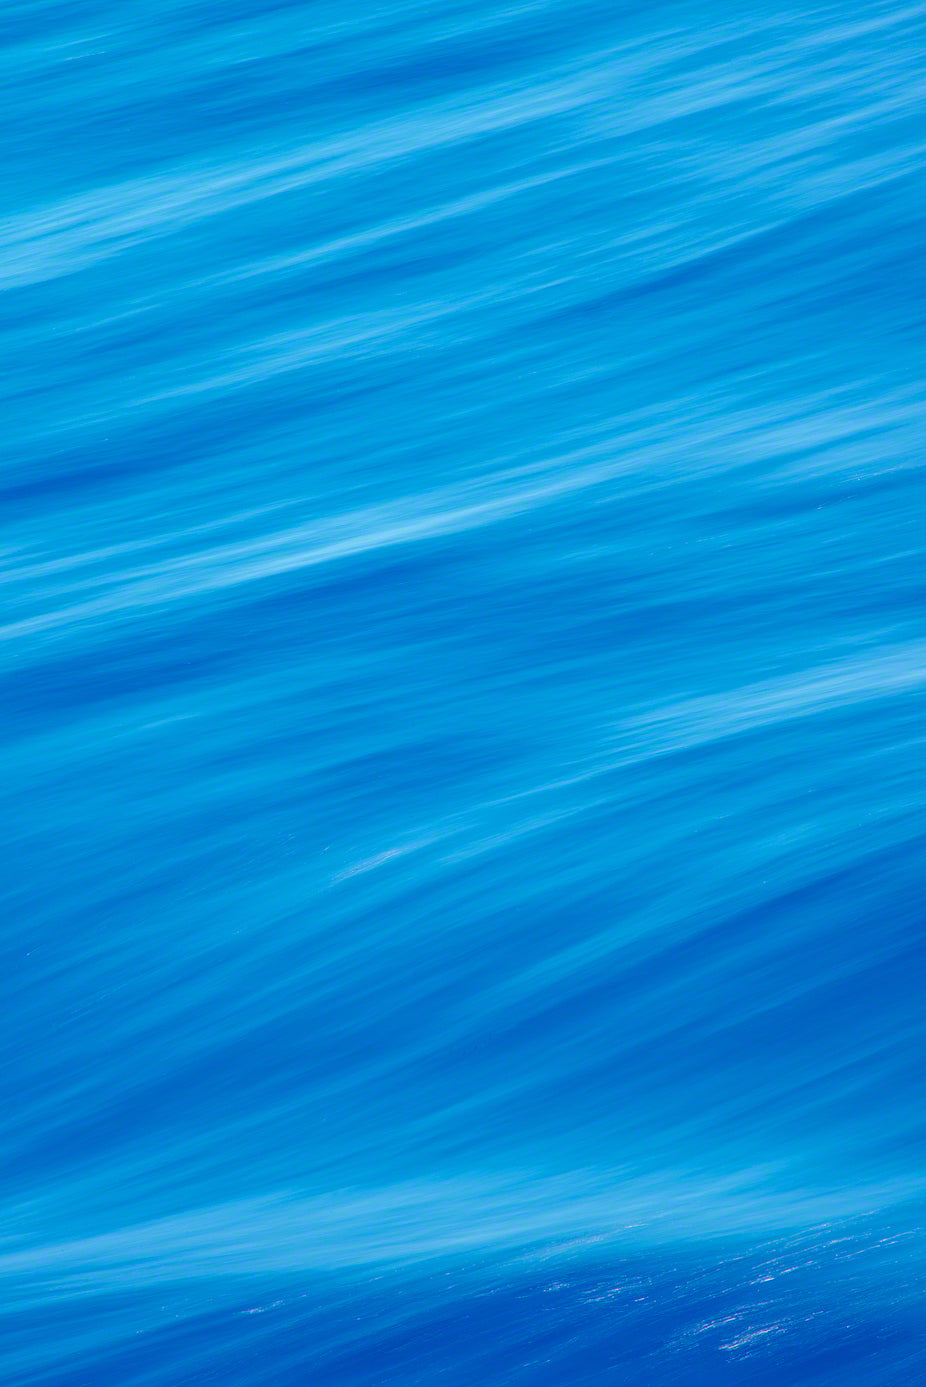 A photo of the swirling water of the Caribbean Sea.